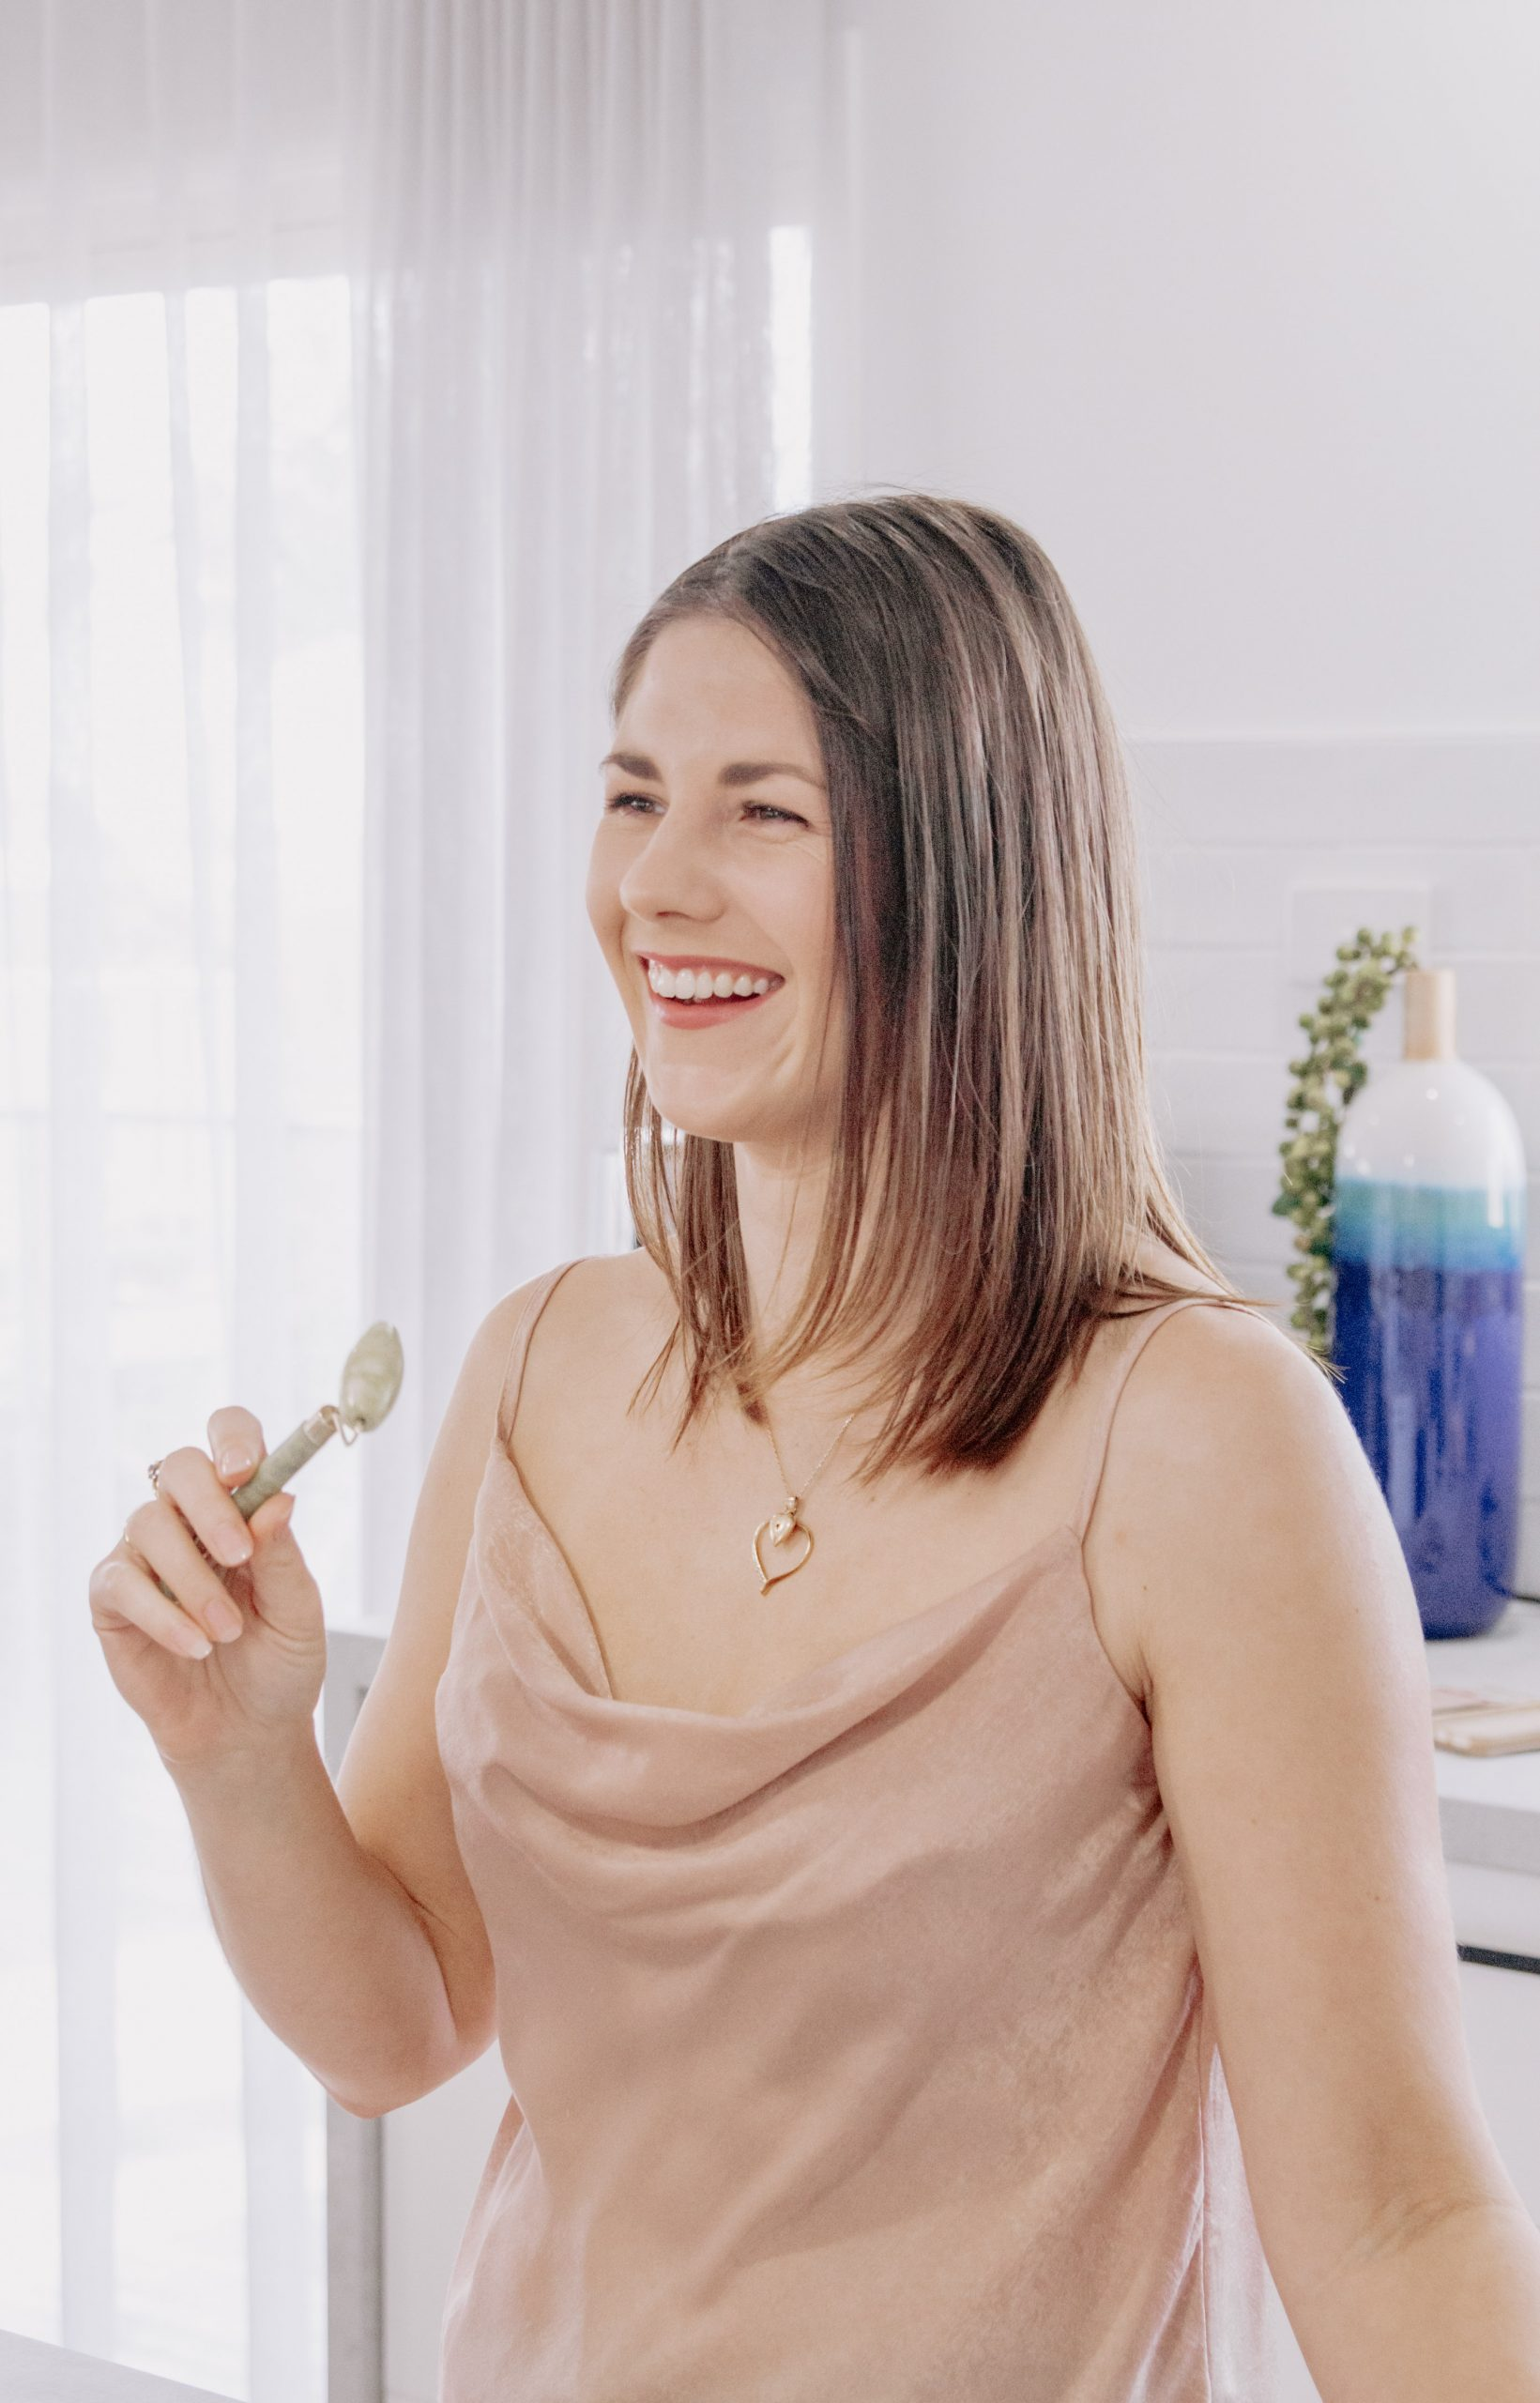 Skin Care Expert and Nutrimetics Consultant Danielle Daly